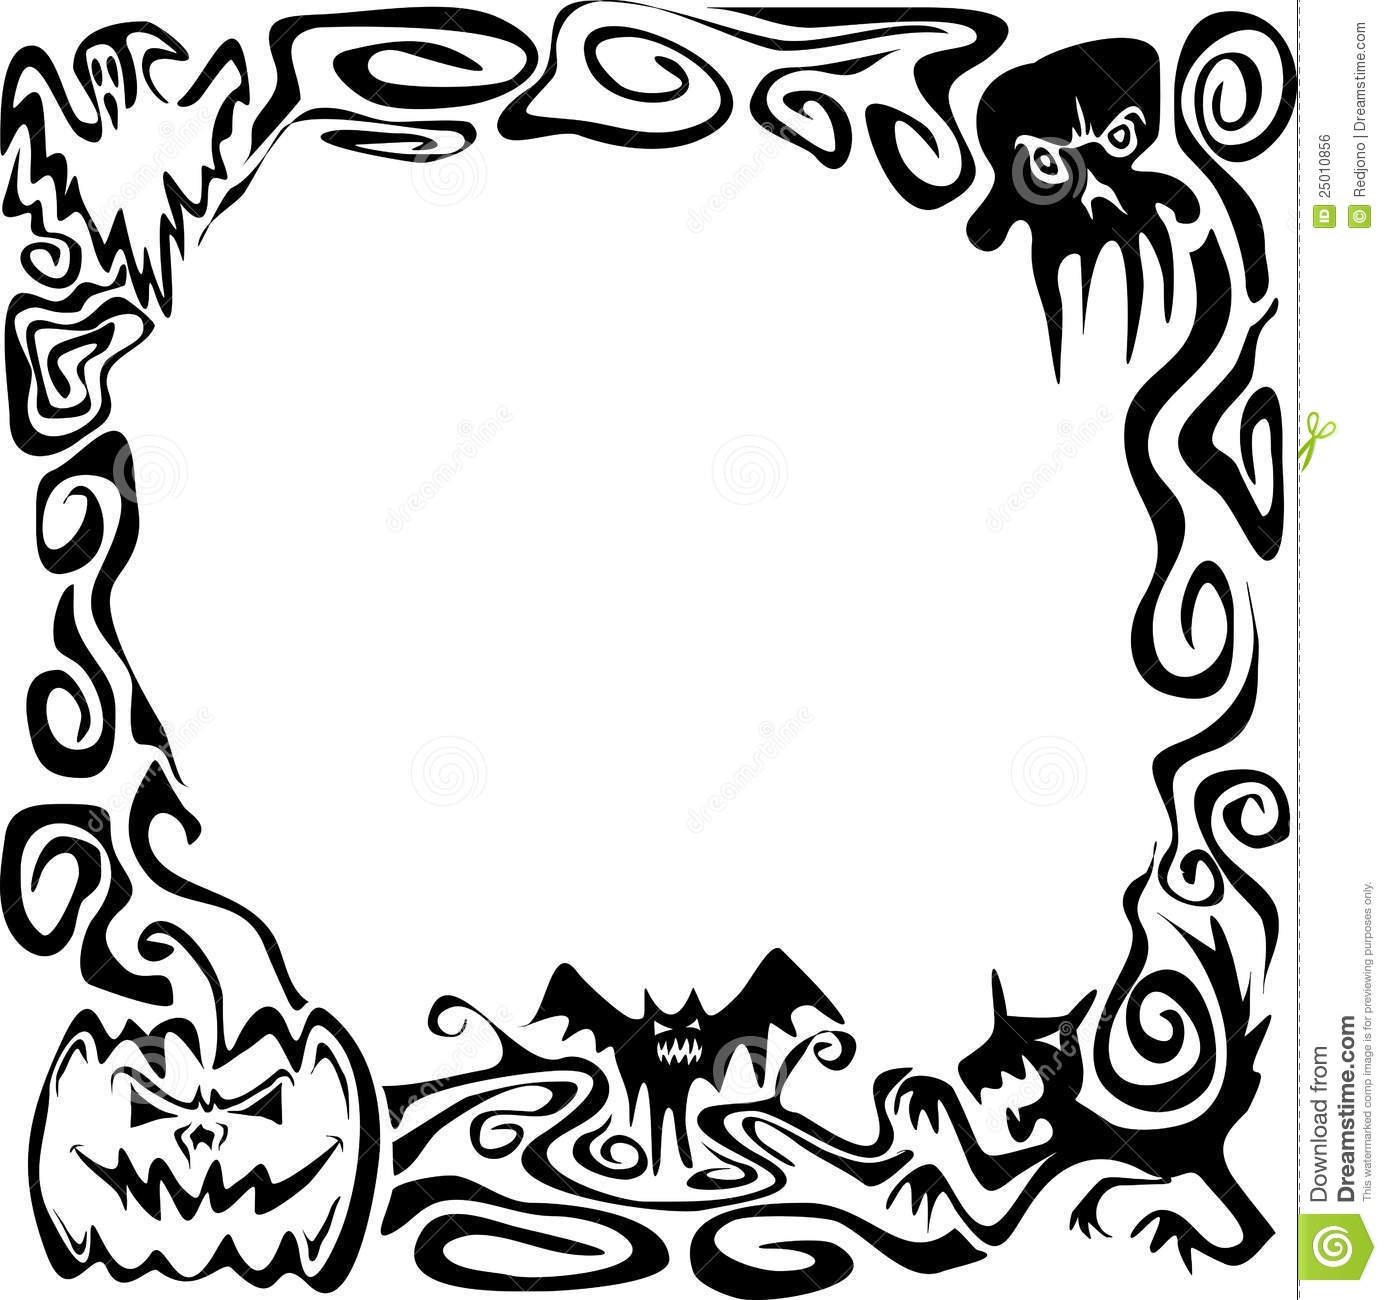 1387x1300 15 Black And White Halloween Pictures Ideas Black And White Pictures